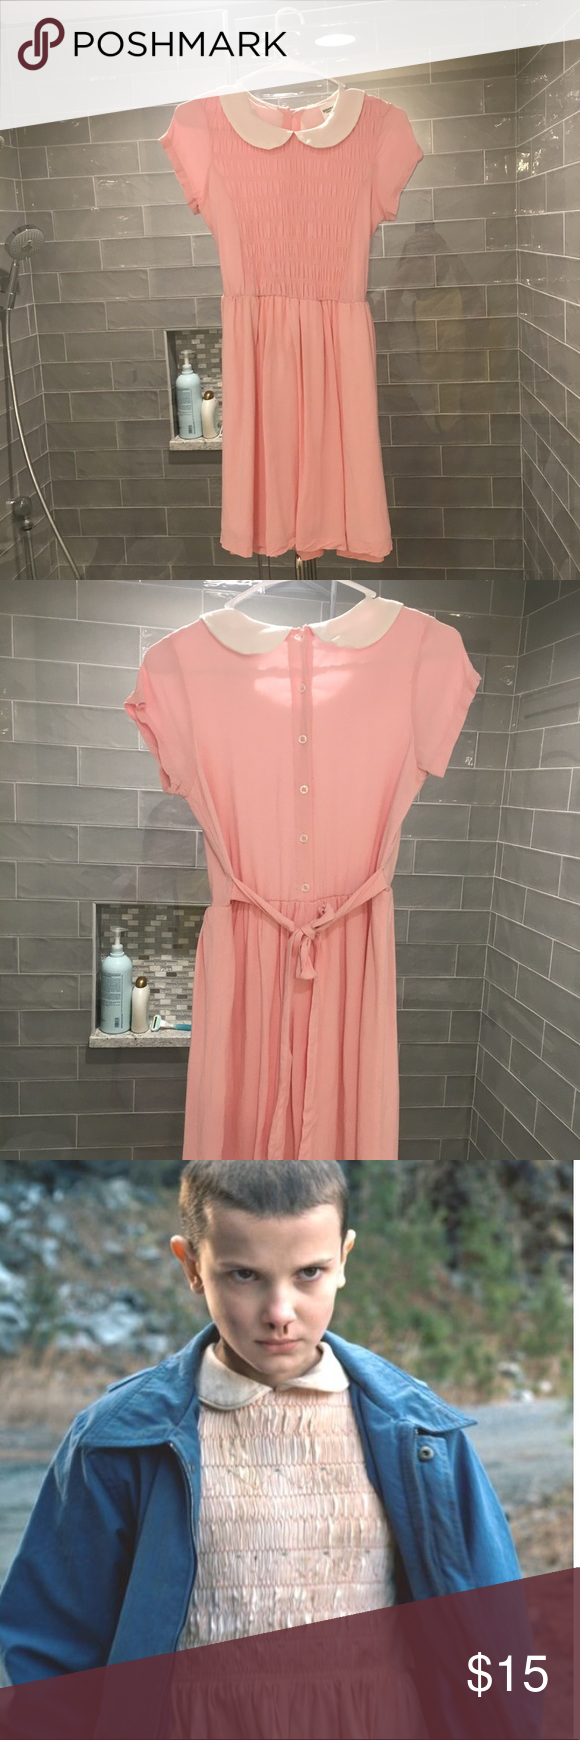 Pink dress from stranger things  Eleven from Stranger Things Dress Cute and comfy eleven inspired